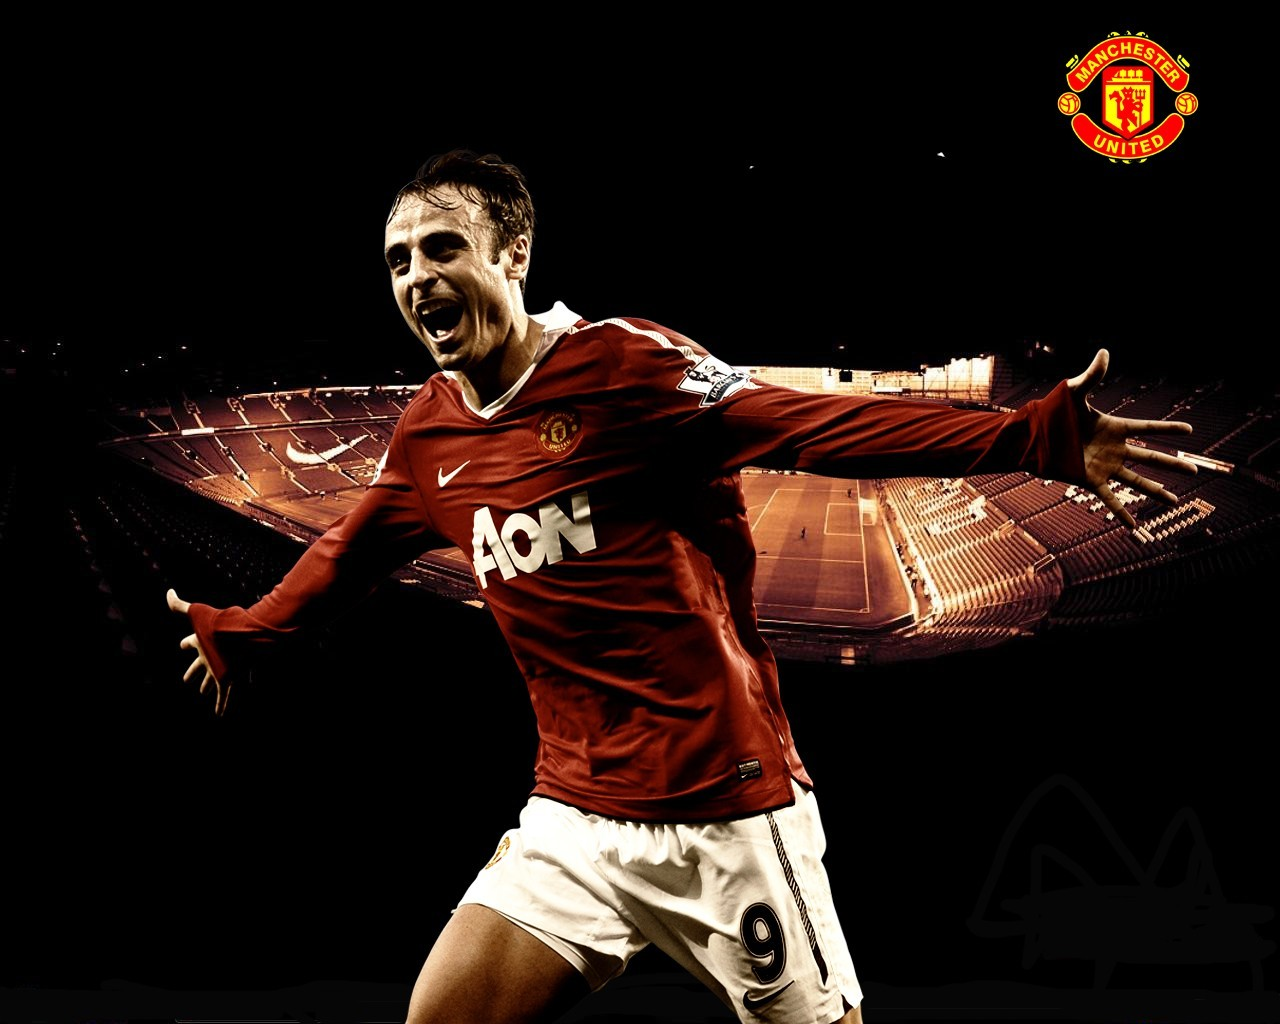 Dimitar Berbatov Manchester United HD Wallpaper